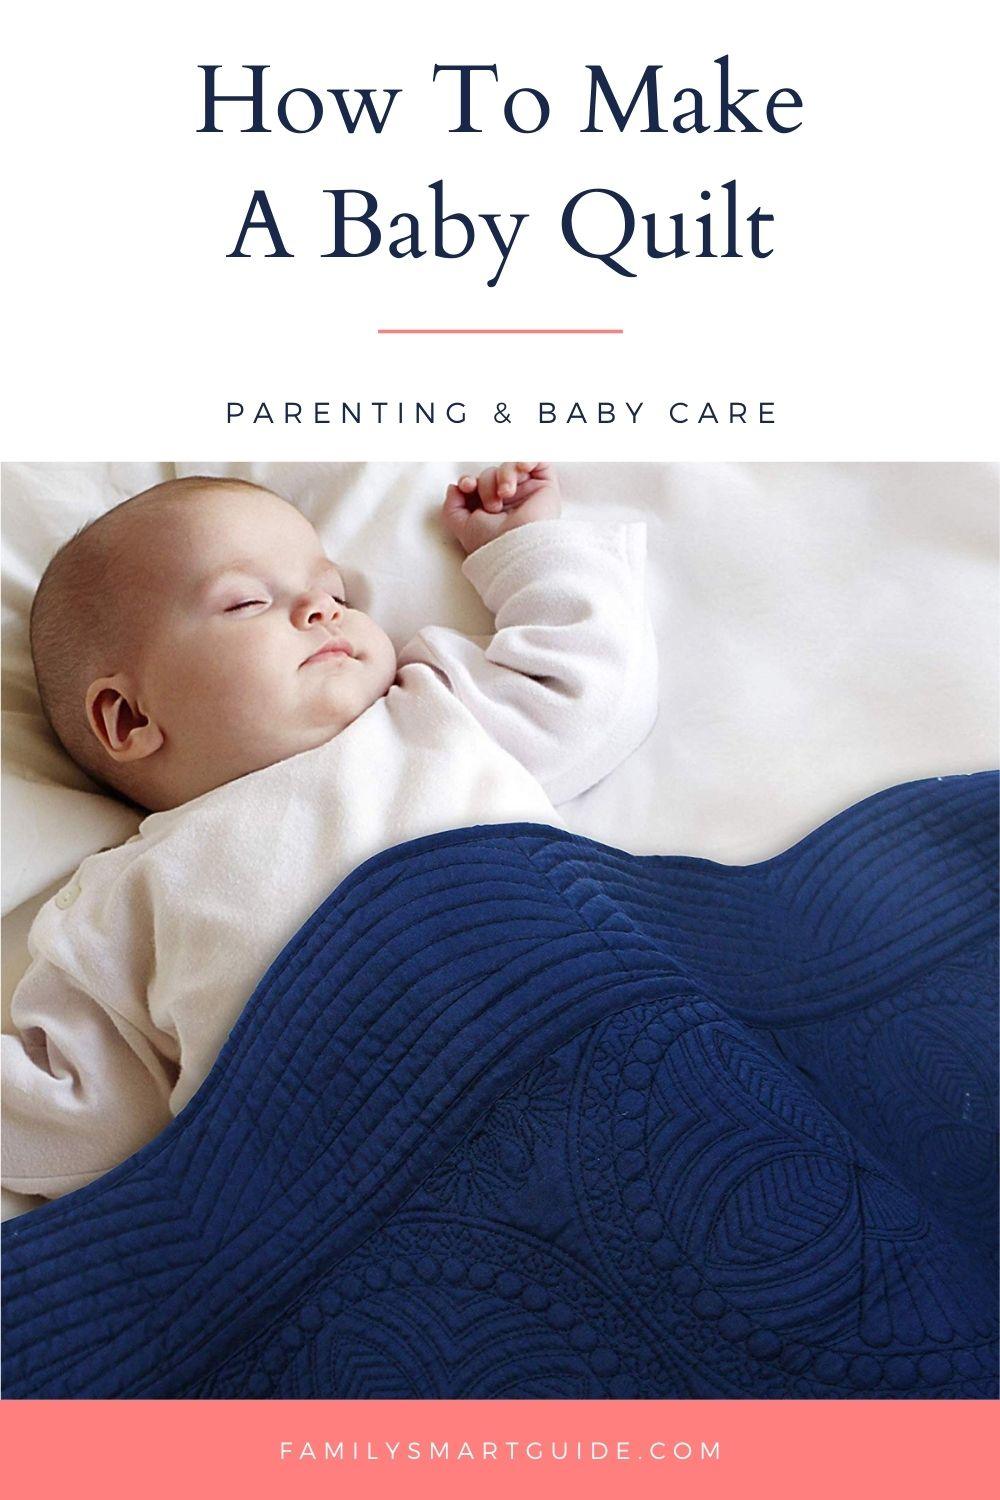 How to Make a Baby Quilt Pinterest